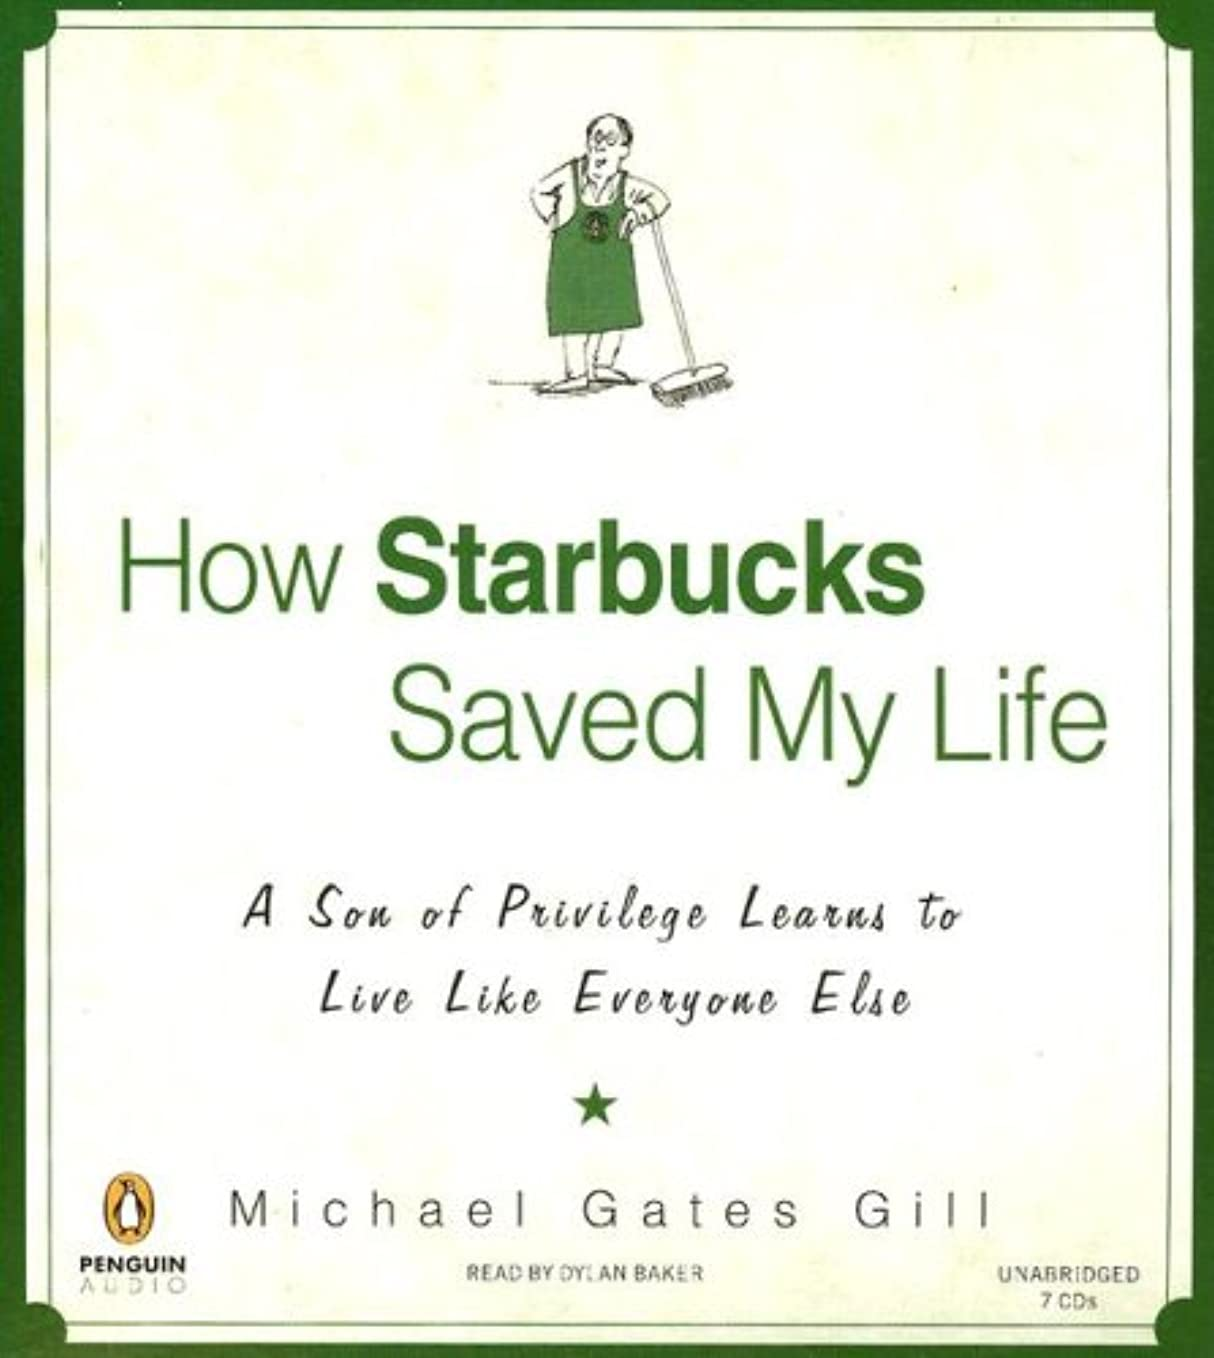 お客様エクスタシー黙認するHow Starbucks Saved My Life: A Son of Privilege Learns to Live Like Everyone Else